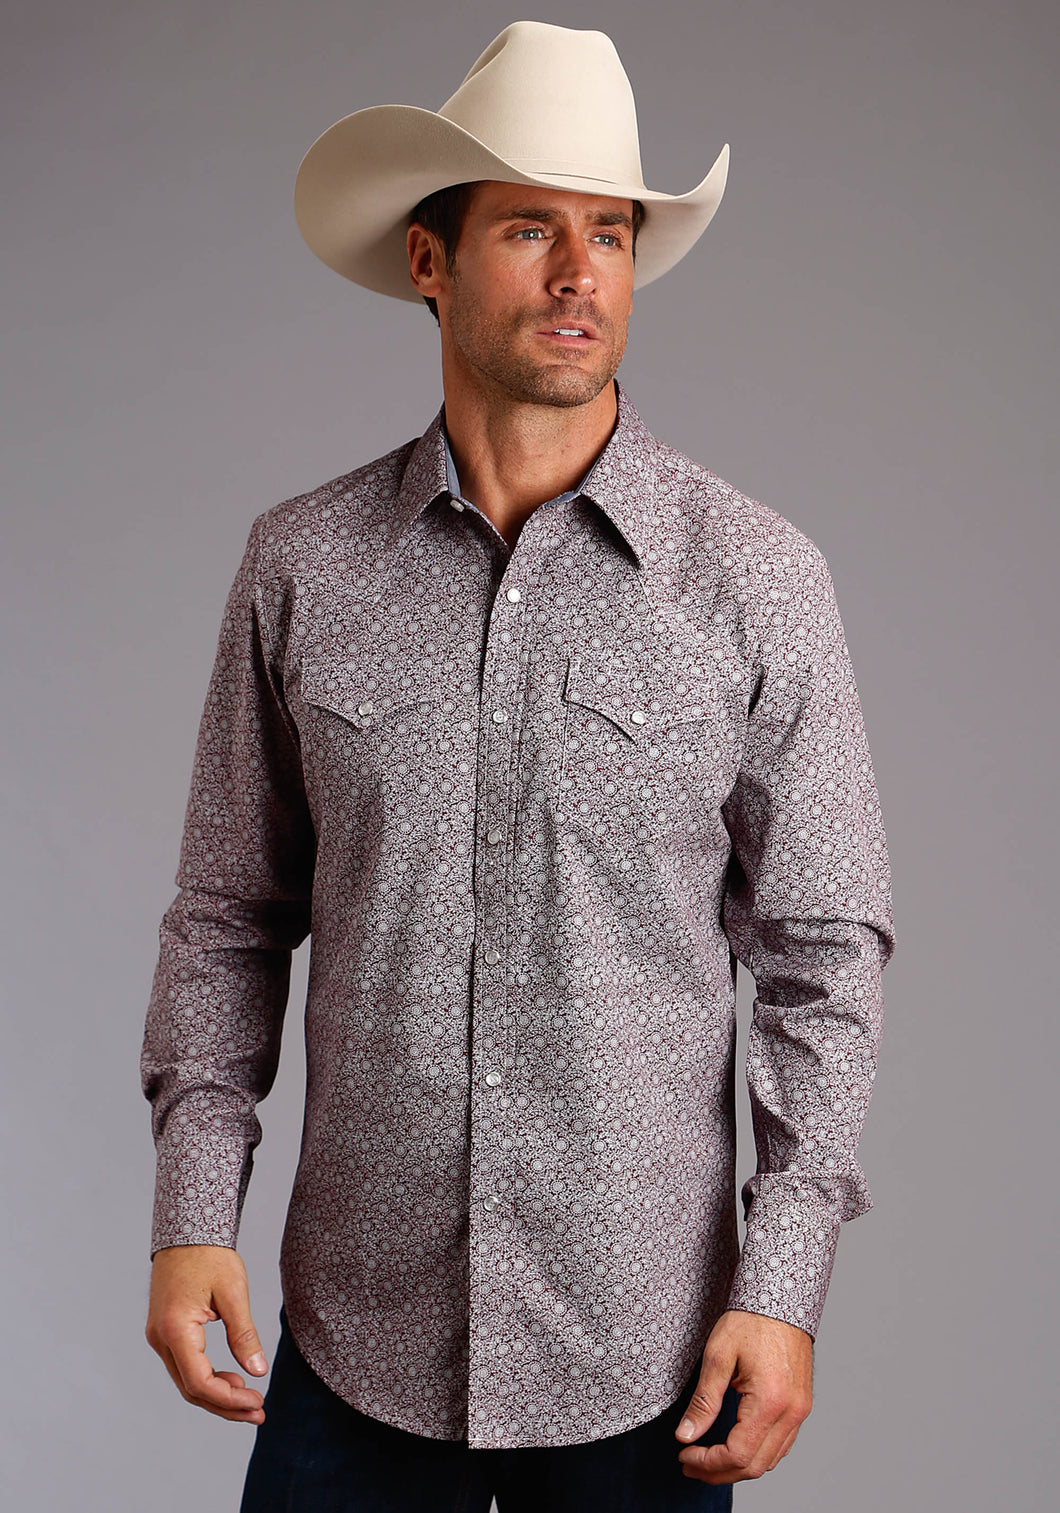 Stetson Men's Collection- Original Rugged Stetson Mens Long Sleeve 2213 Vine Print